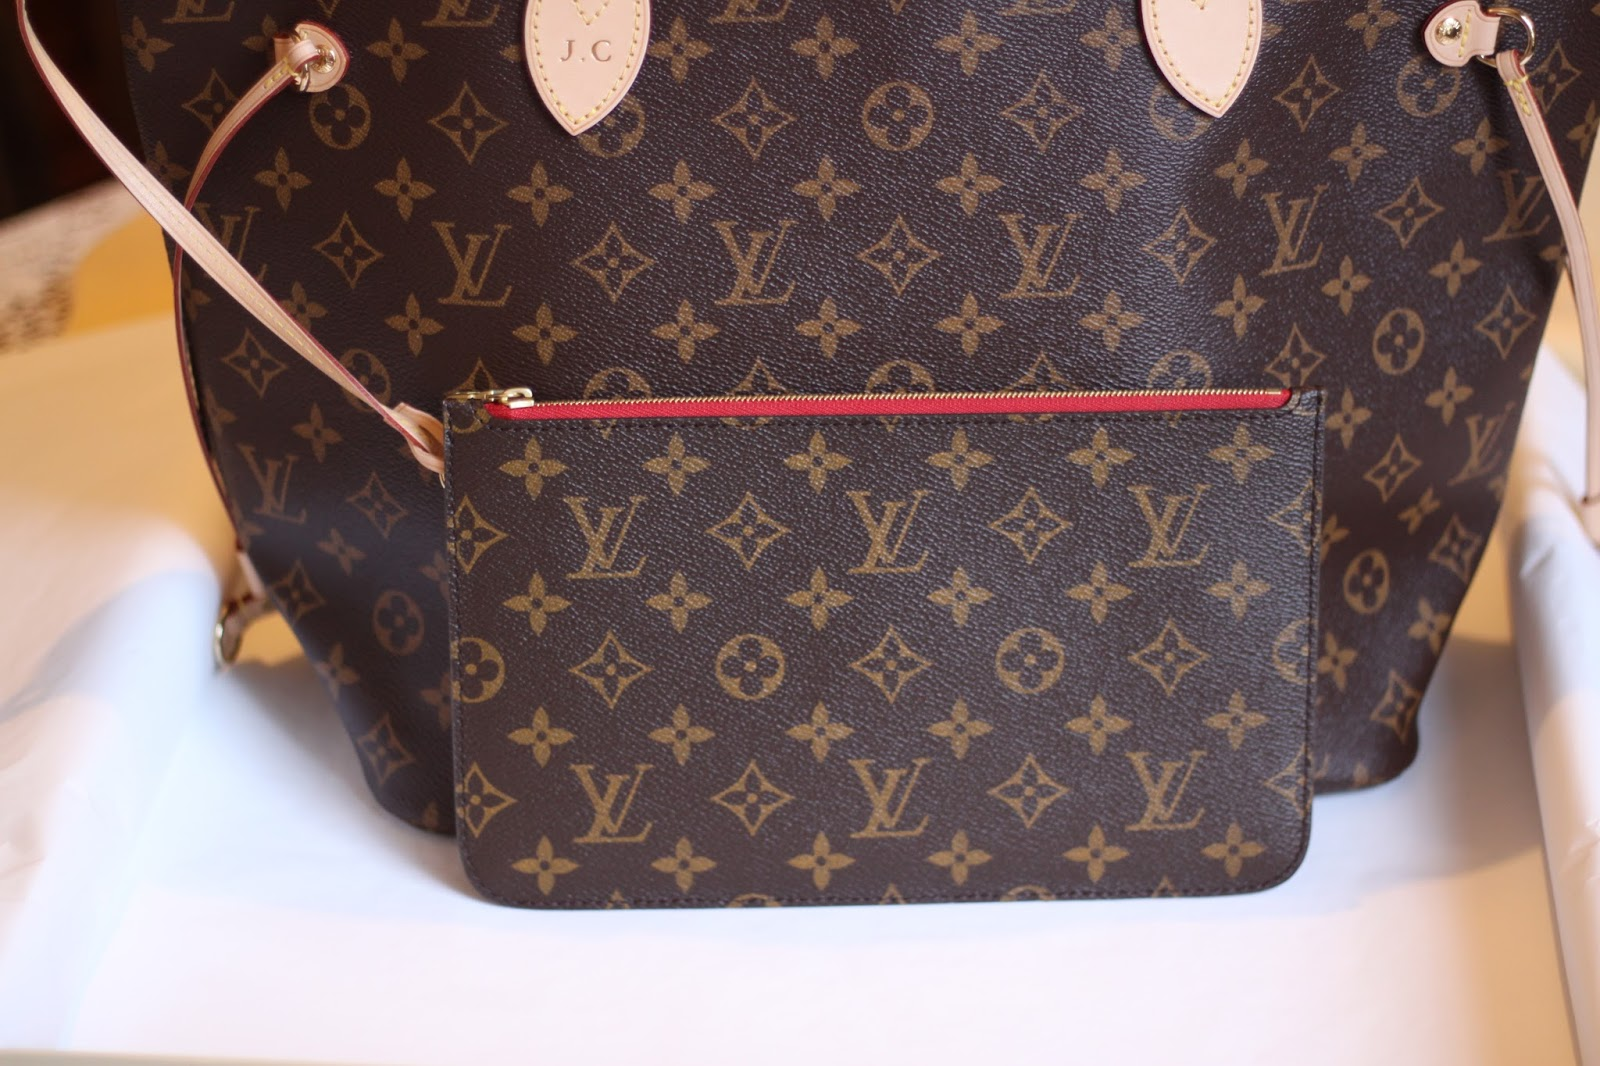 The Louis Vuitton Neverfull MM with attached wristlet